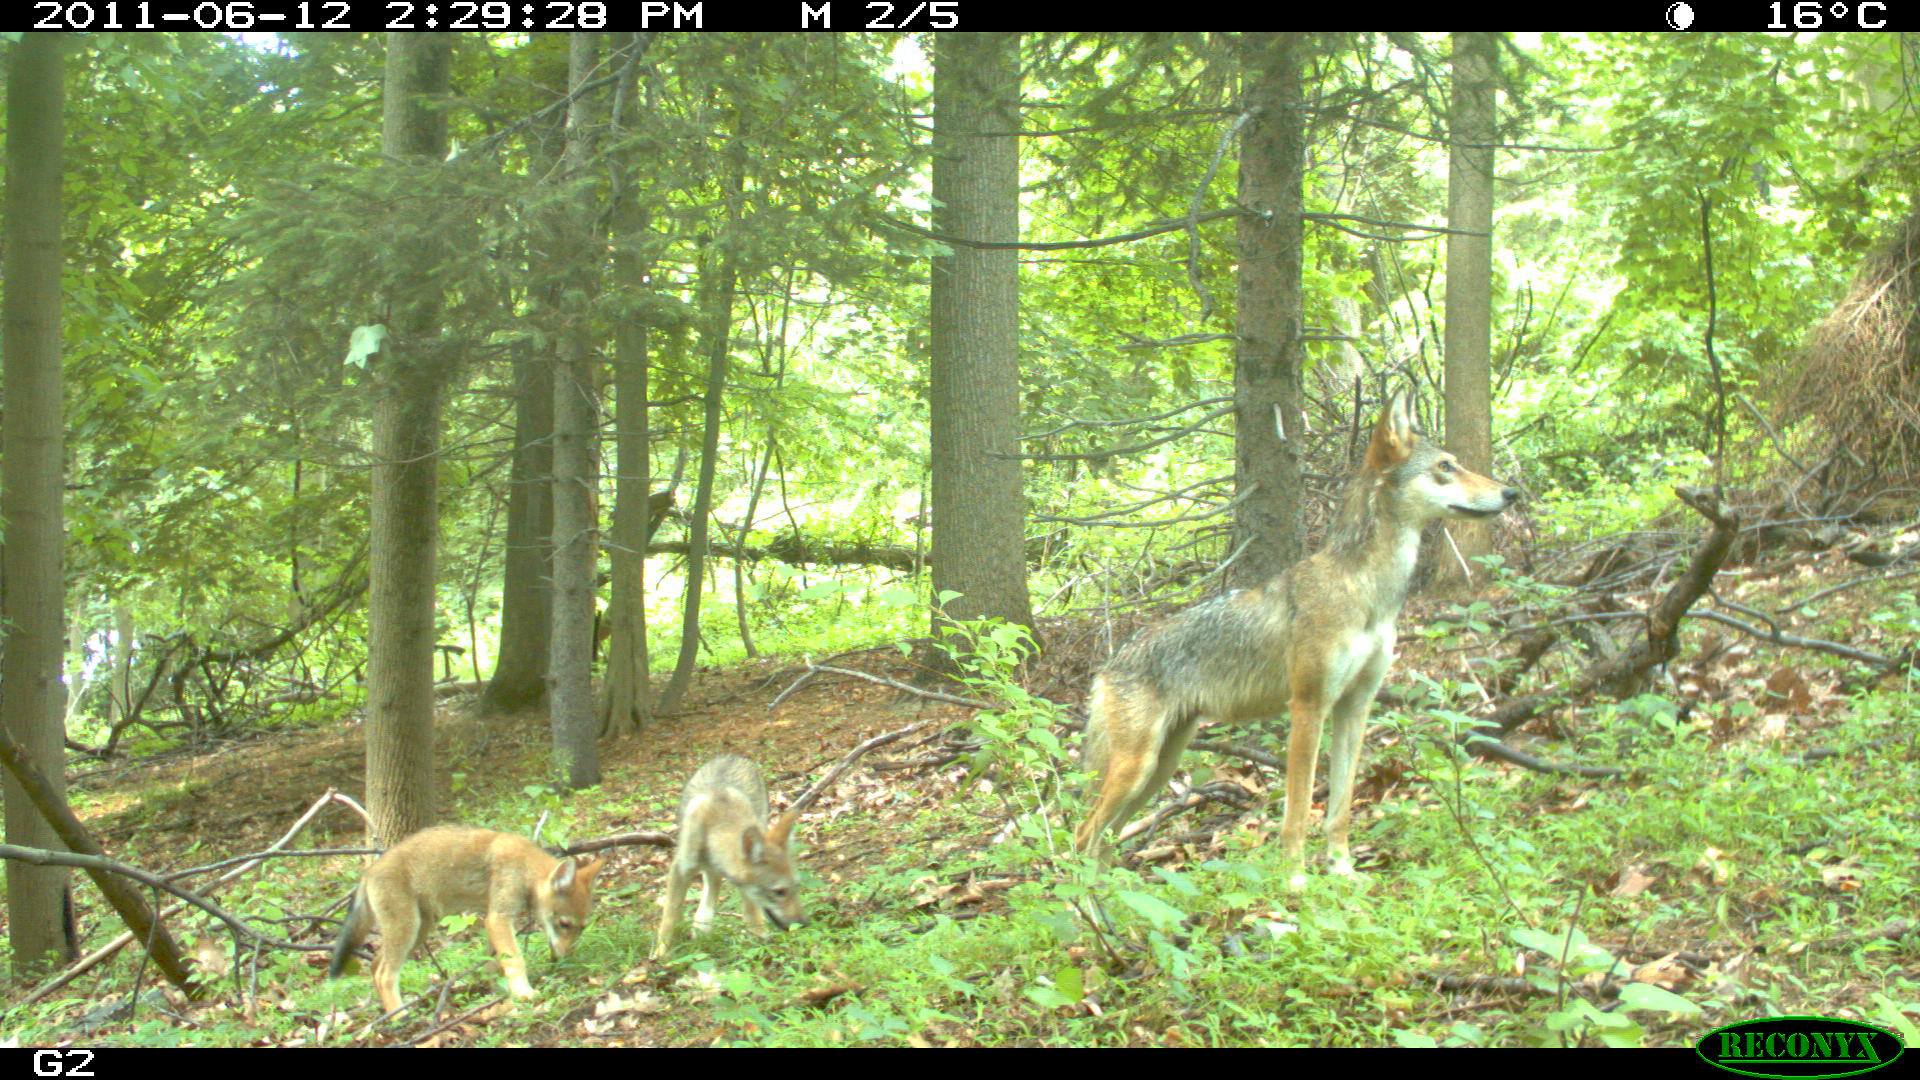 coyotes on camera trap